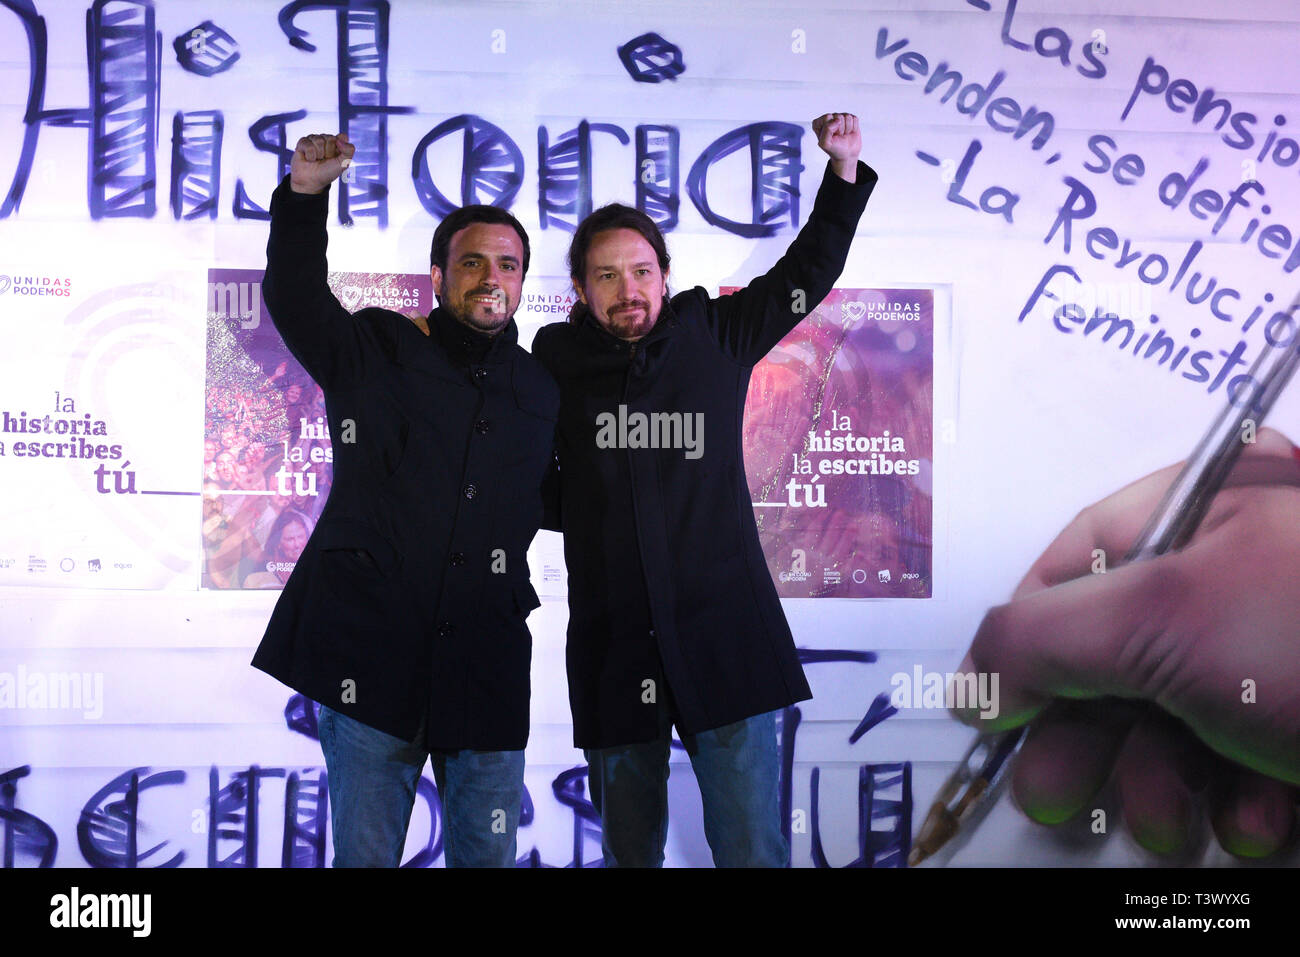 Madrid, Madrid, Spain. 11th Apr, 2019. Spanish left-wing Podemos party leader and presidential candidate for the wing-left Unidas Podemos (United we can) coalition Pablo Iglesias (R), and the general coordinator and lead candidate to the Parliament from Malaga of Unidas Podemos, Alberto Garzon (L), .are seen during a rally to officially launch the party's electoral campaign in Madrid.The 2019 Spanish general election will be held on the 29th April. Credit: John Milner/SOPA Images/ZUMA Wire/Alamy Live News Stock Photo